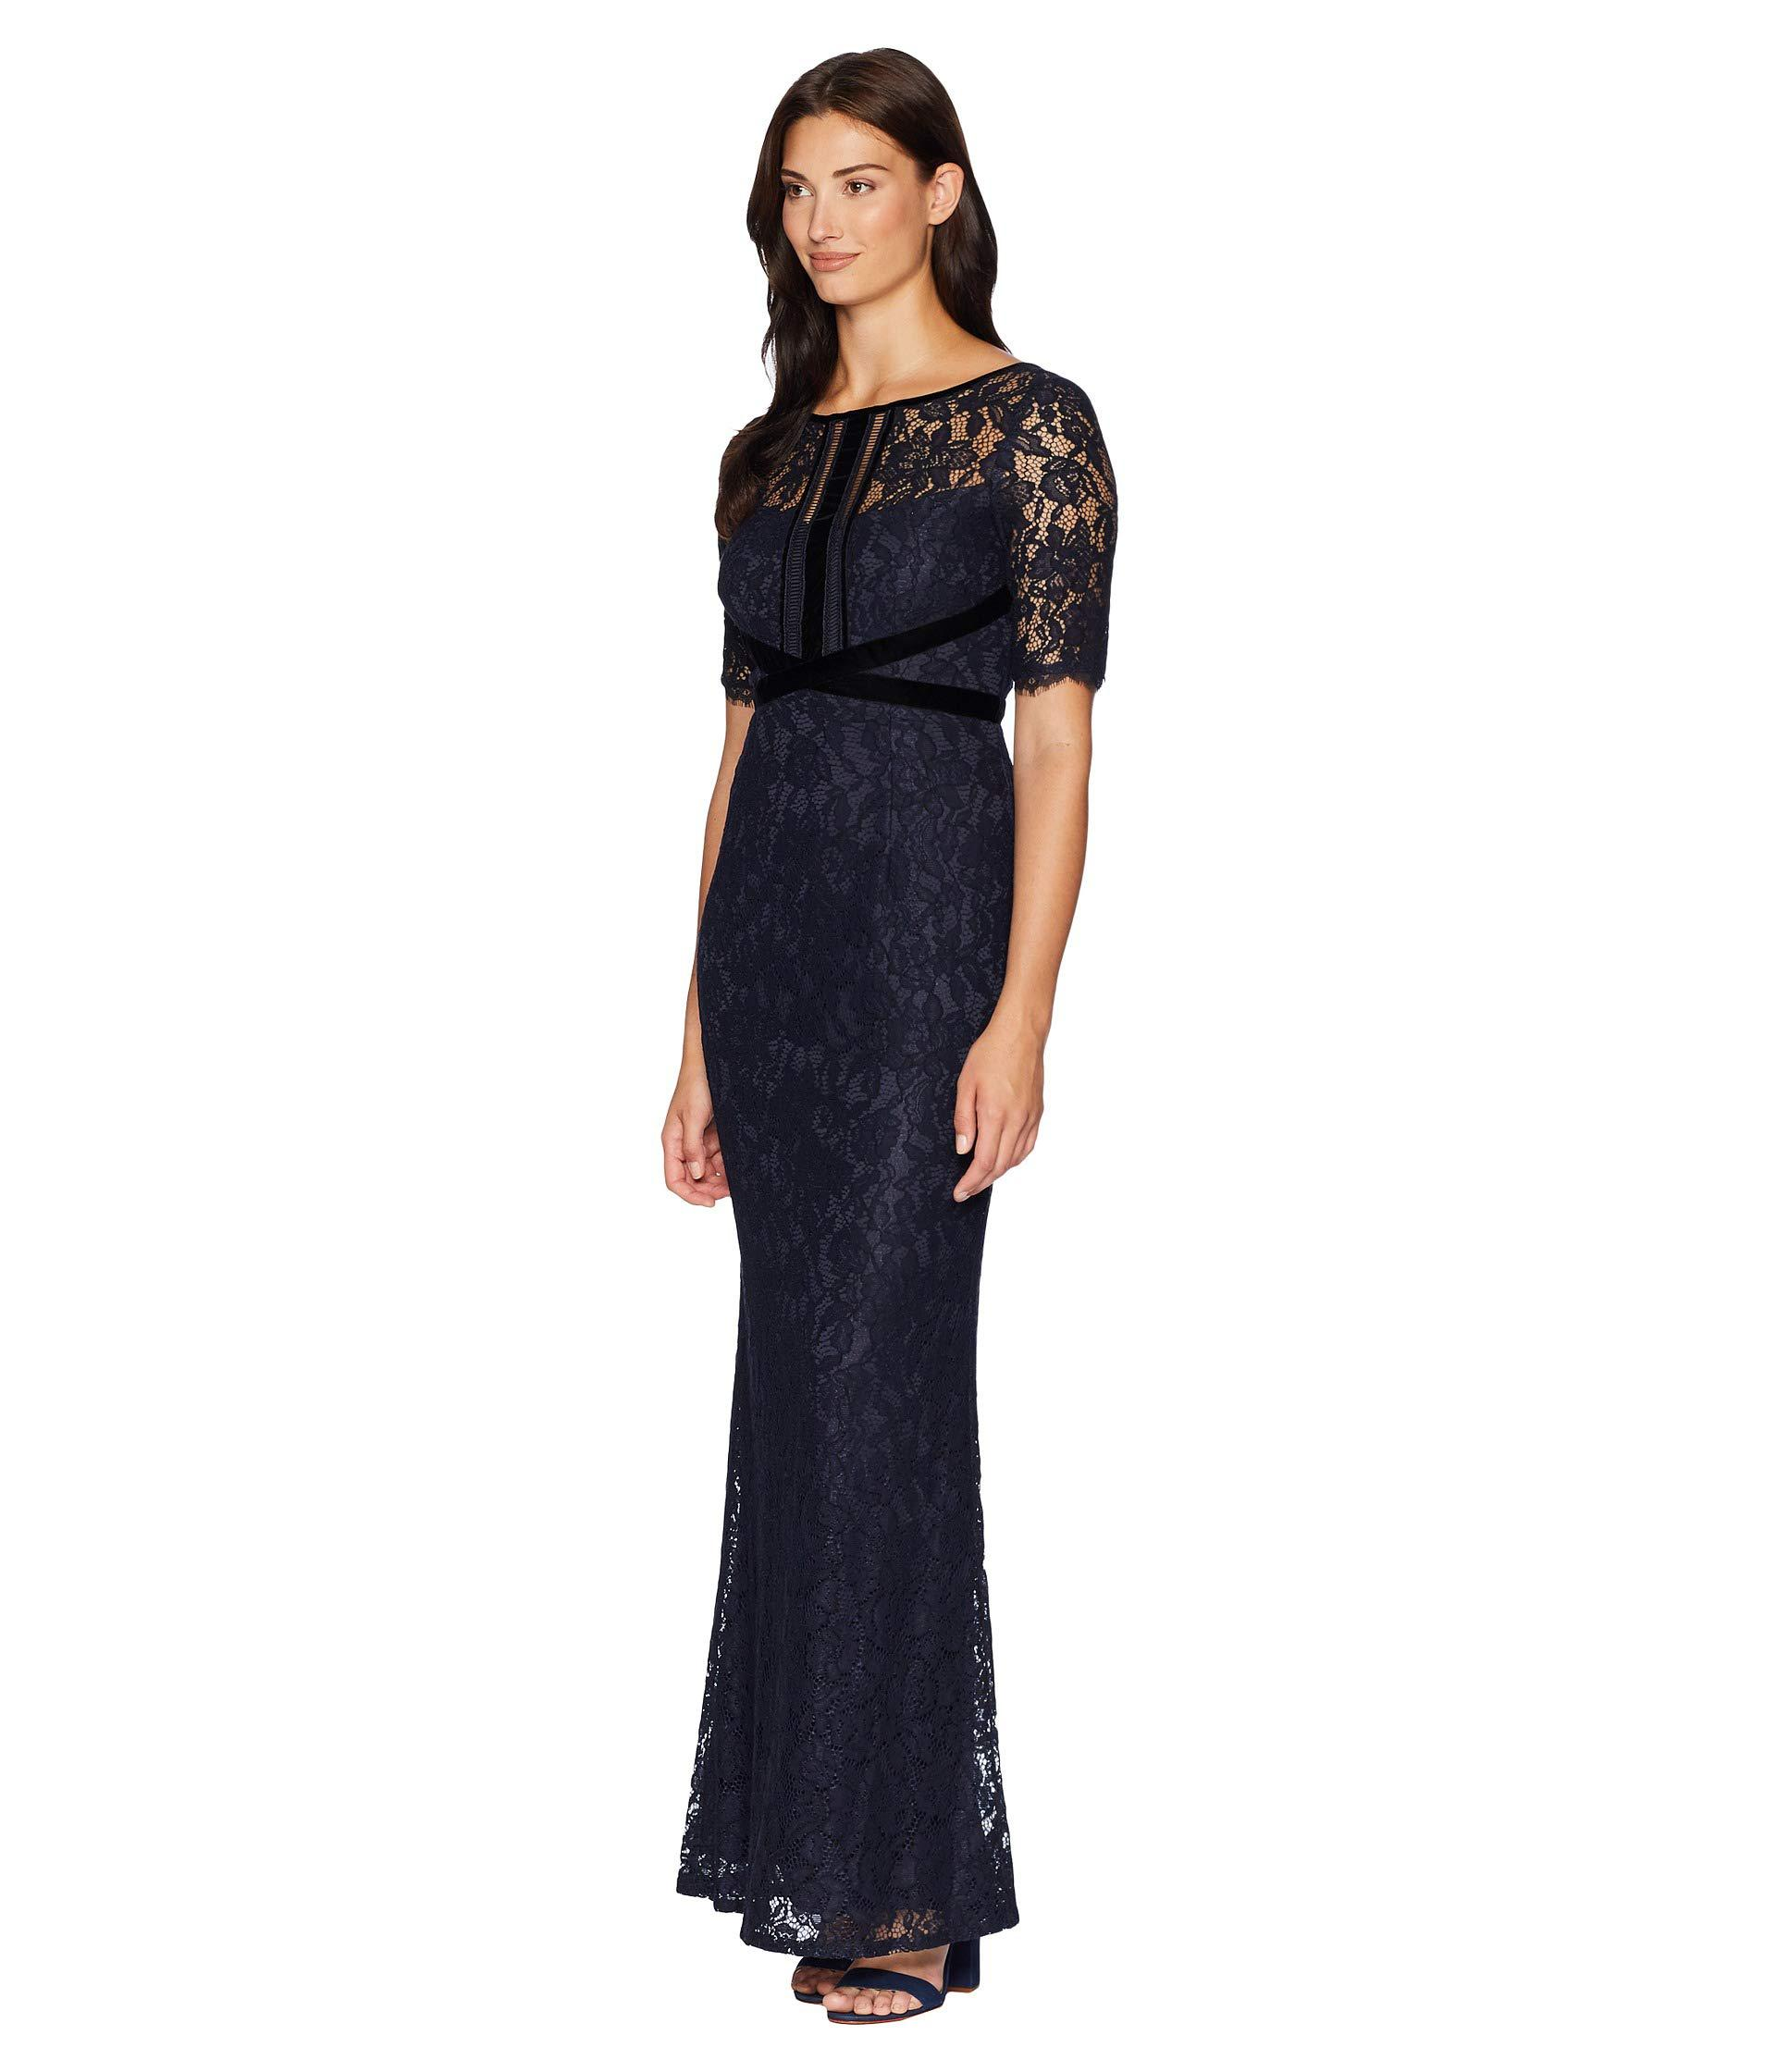 Lyst - Adrianna Papell Elbow Sleeve Lace Gown With Crisscross Bodice ...